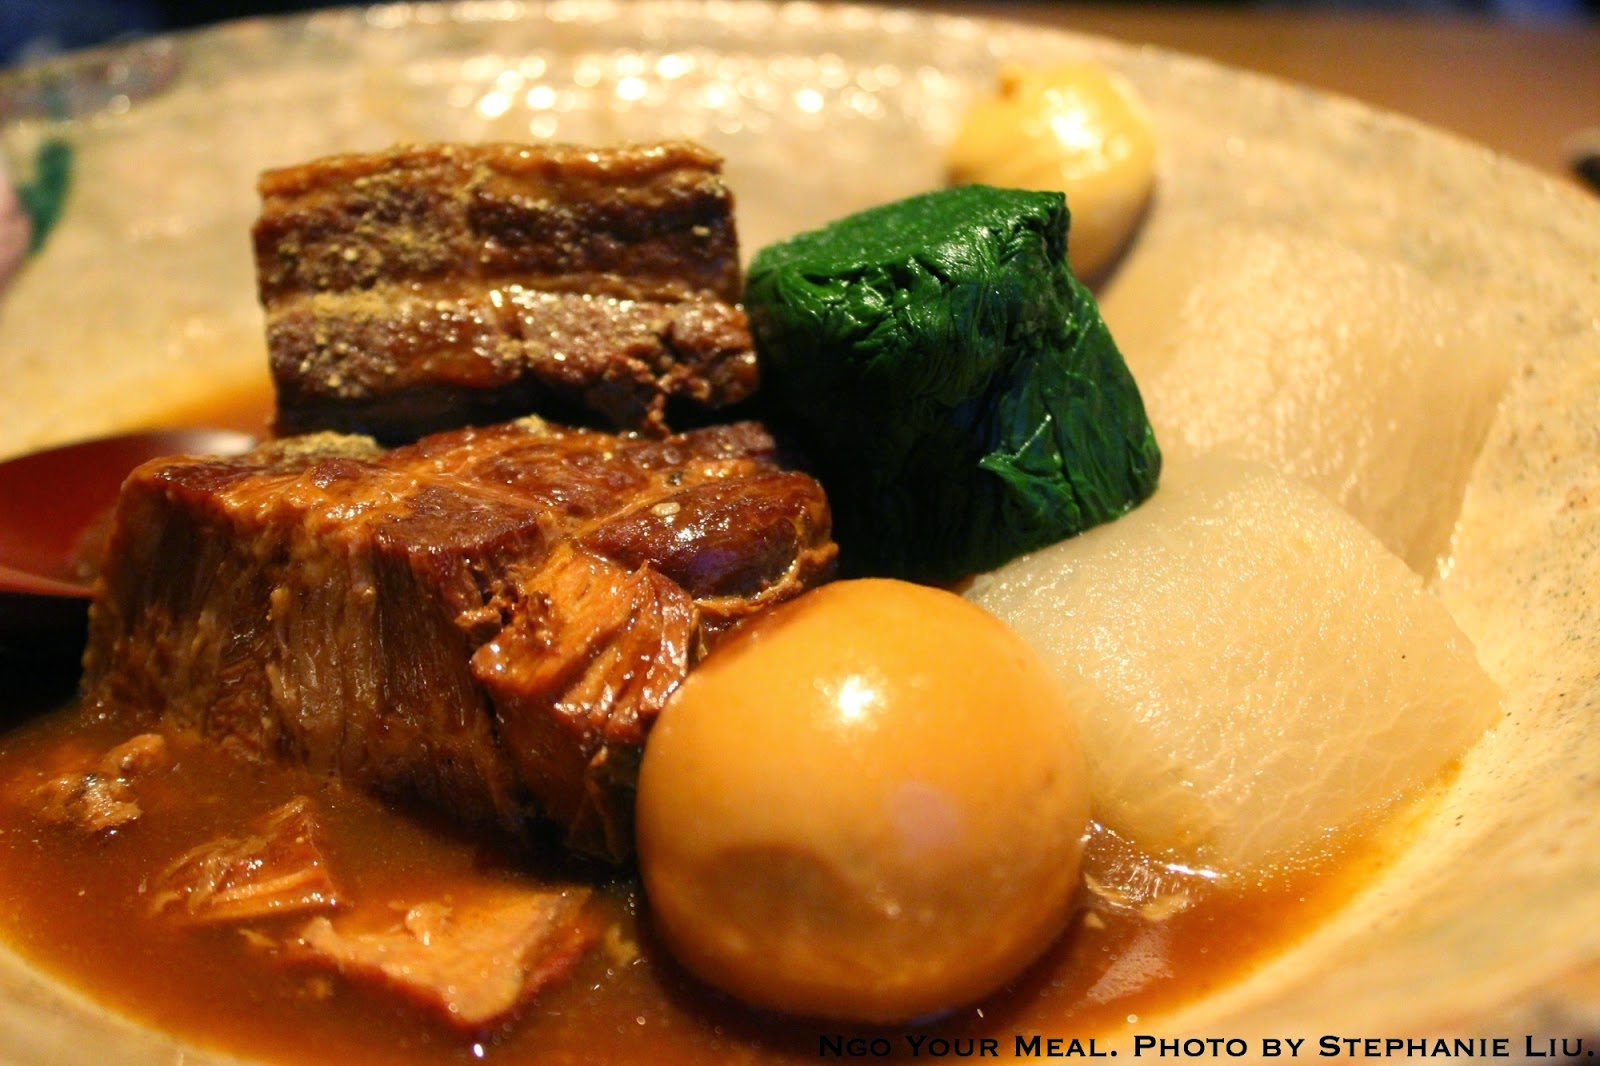 Kurobuta Kakuni: Braised Berkshire pork belly in sansho miso served with a hard boiled egg, spinach and daikon radish at En Japanese Brasserie